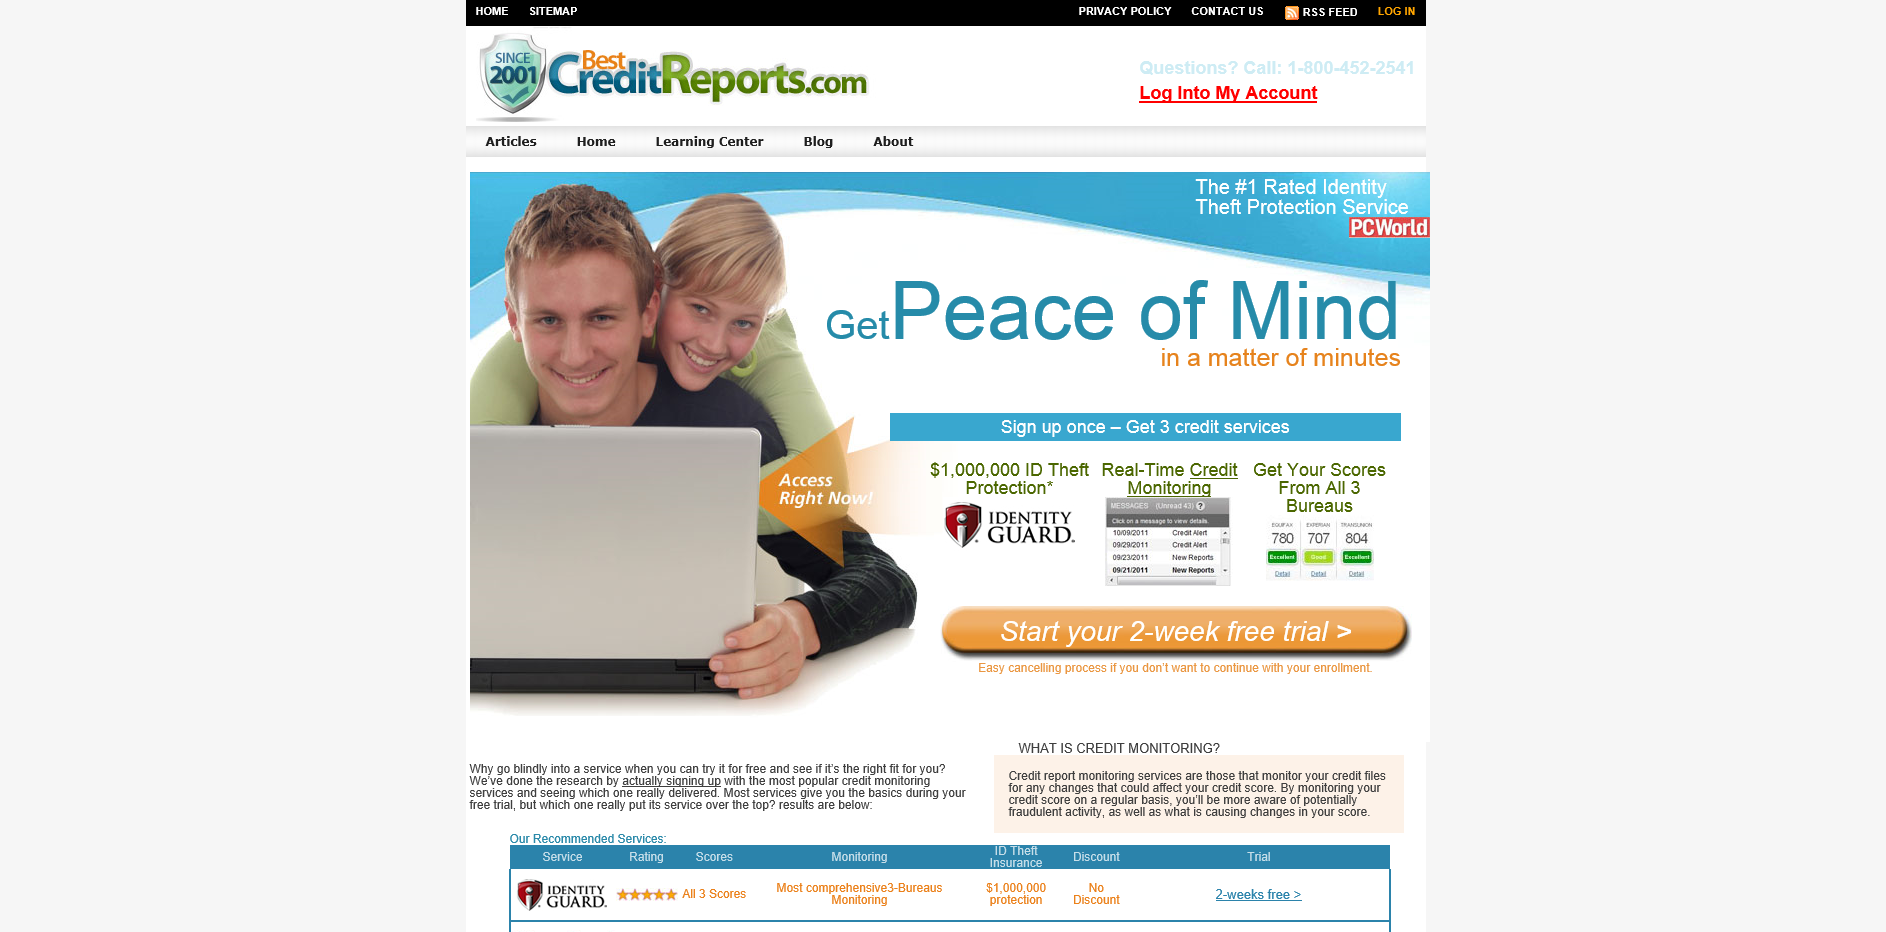 Best Credit reports